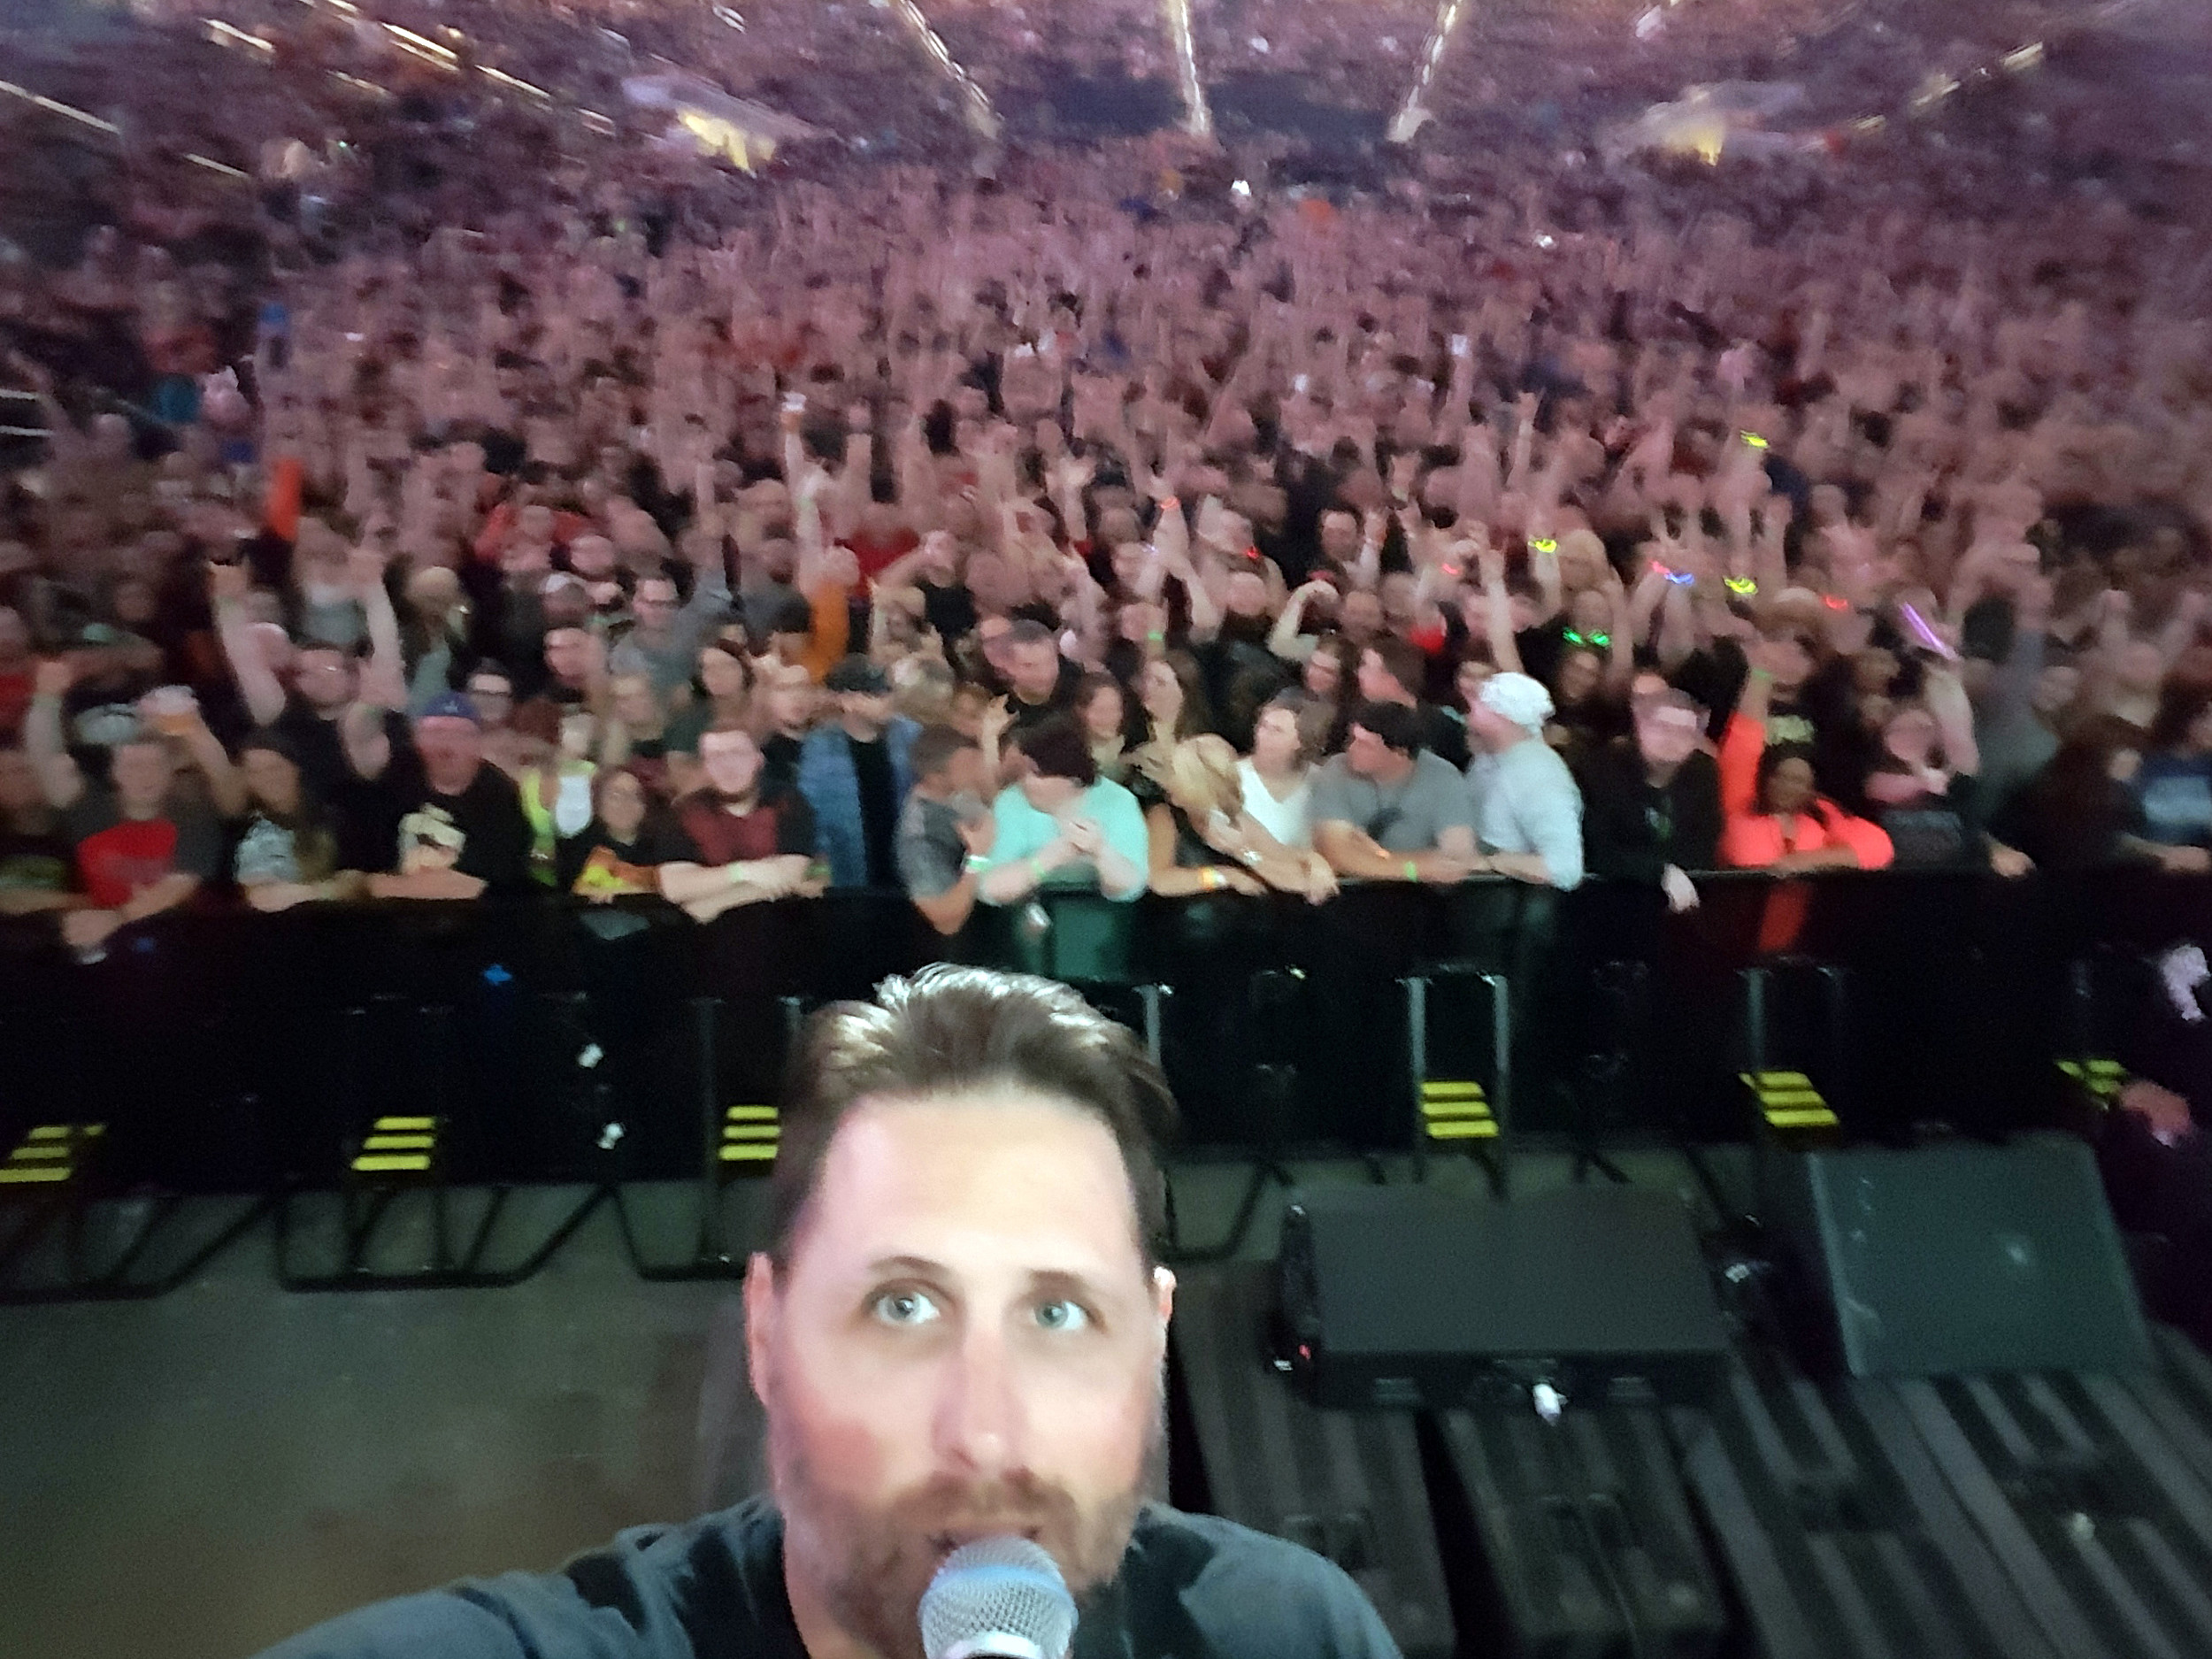 Selfie with the crowd